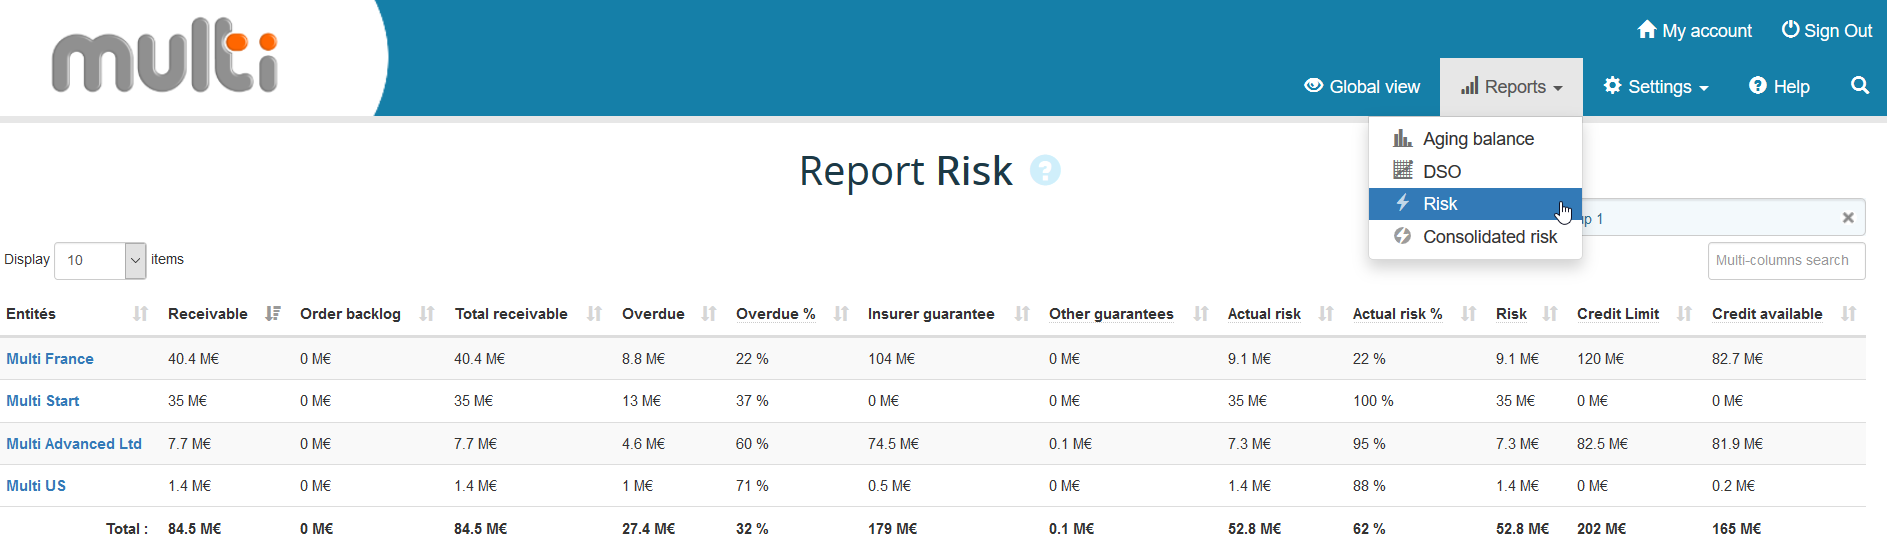 Multi-entity risk report